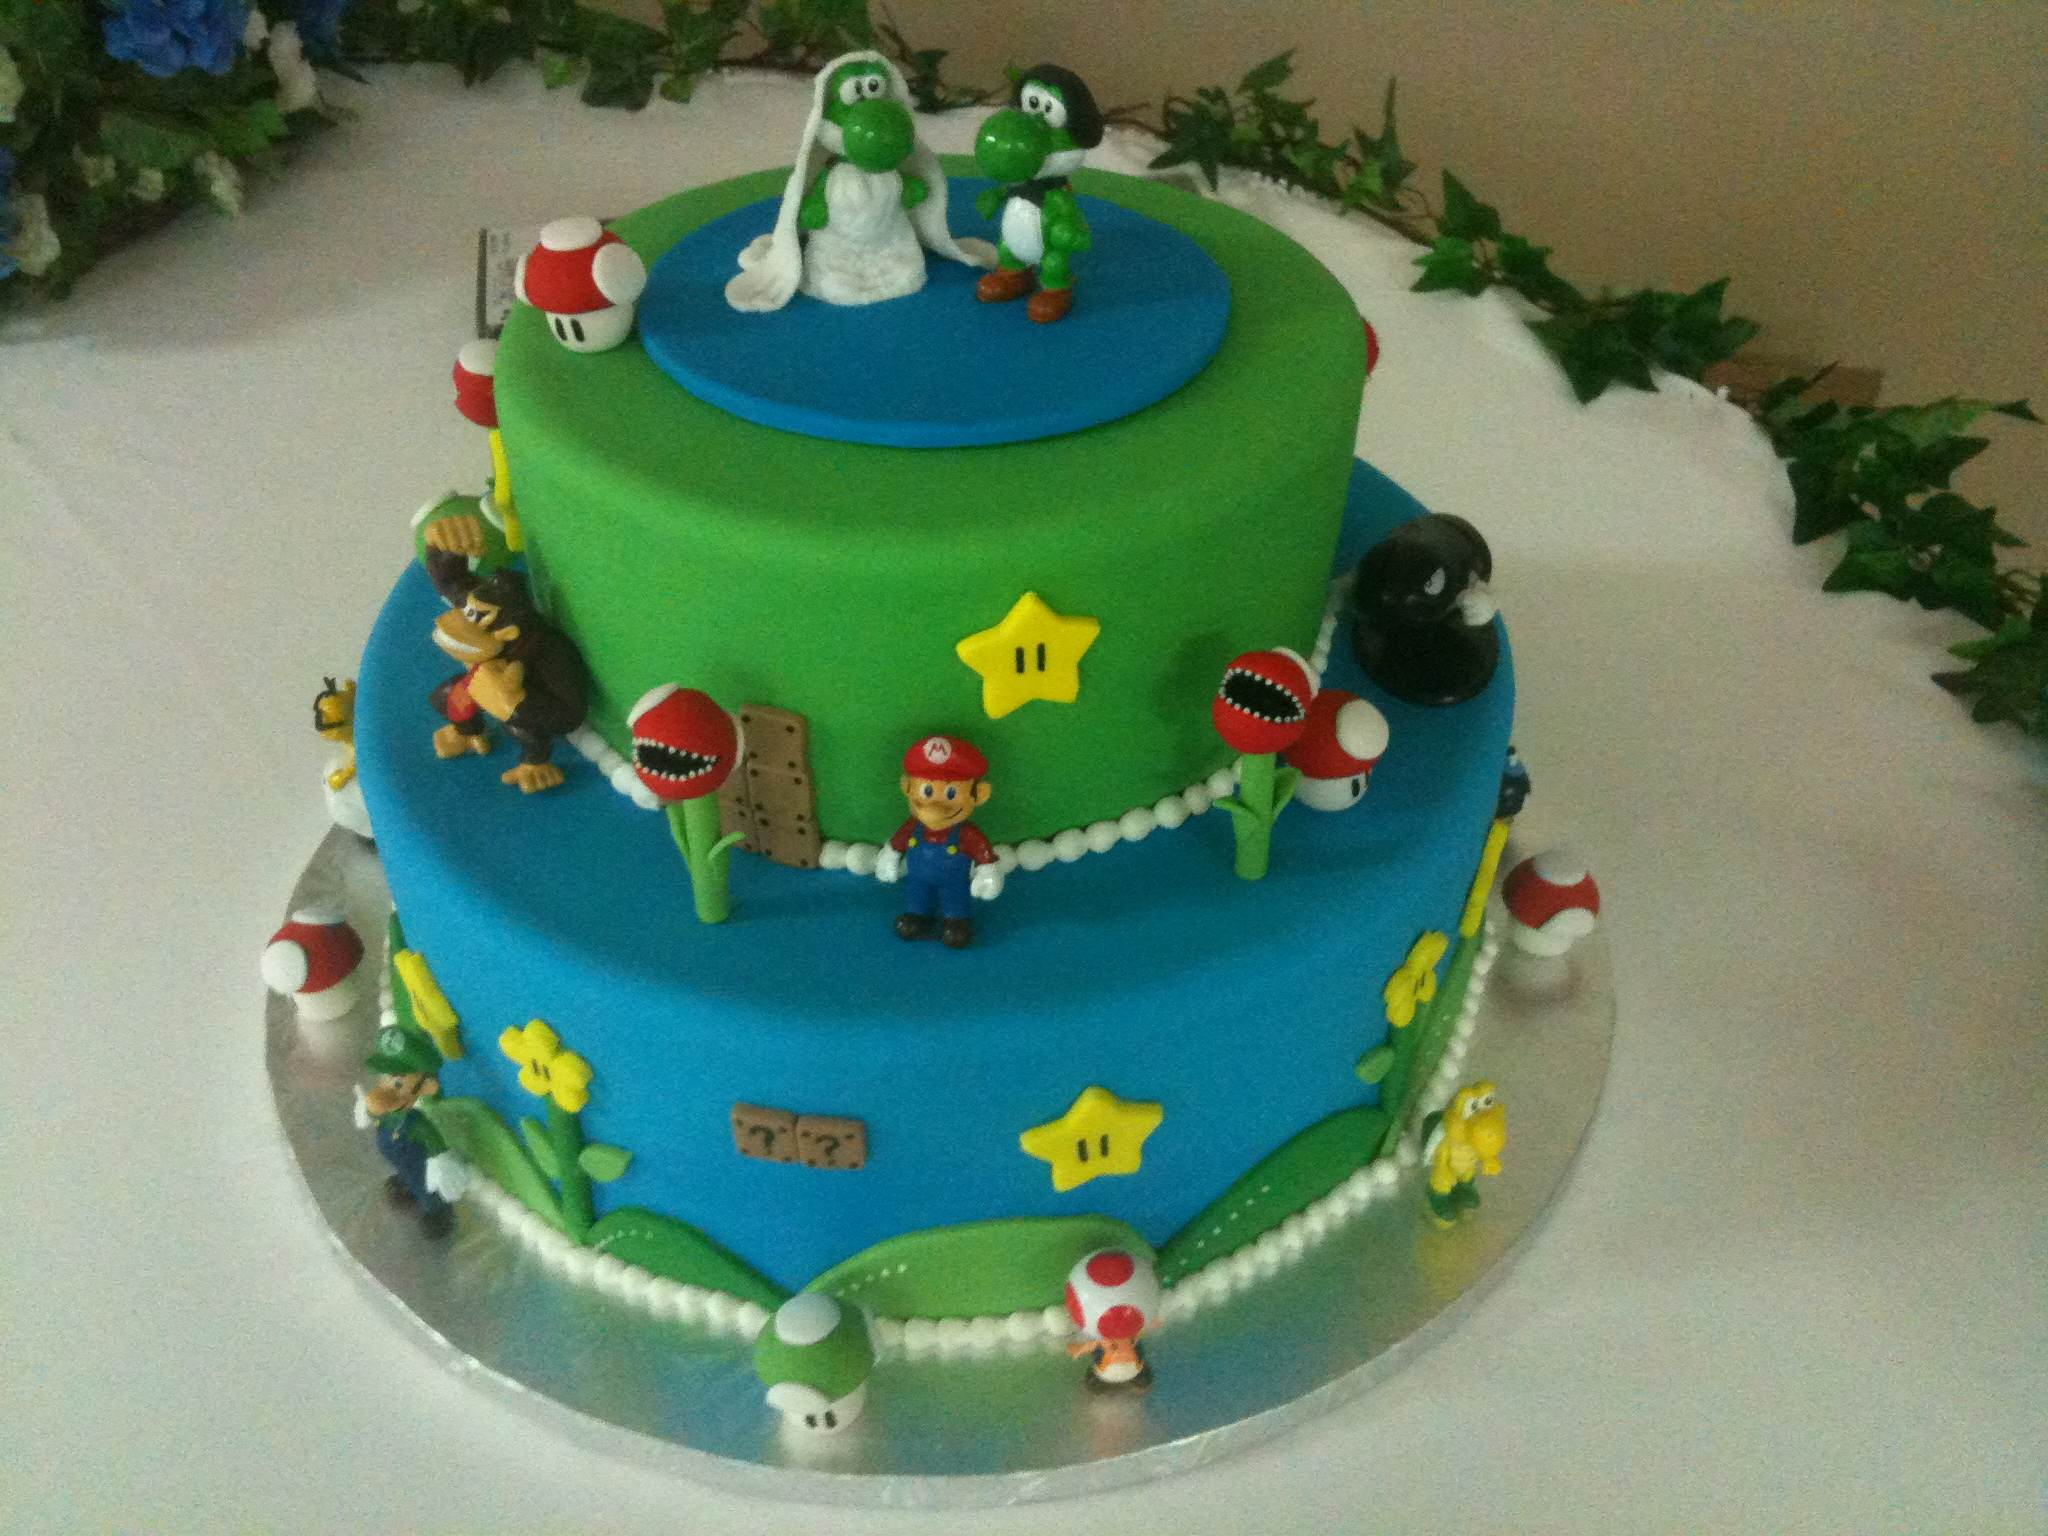 A & A wedding, groom's cake